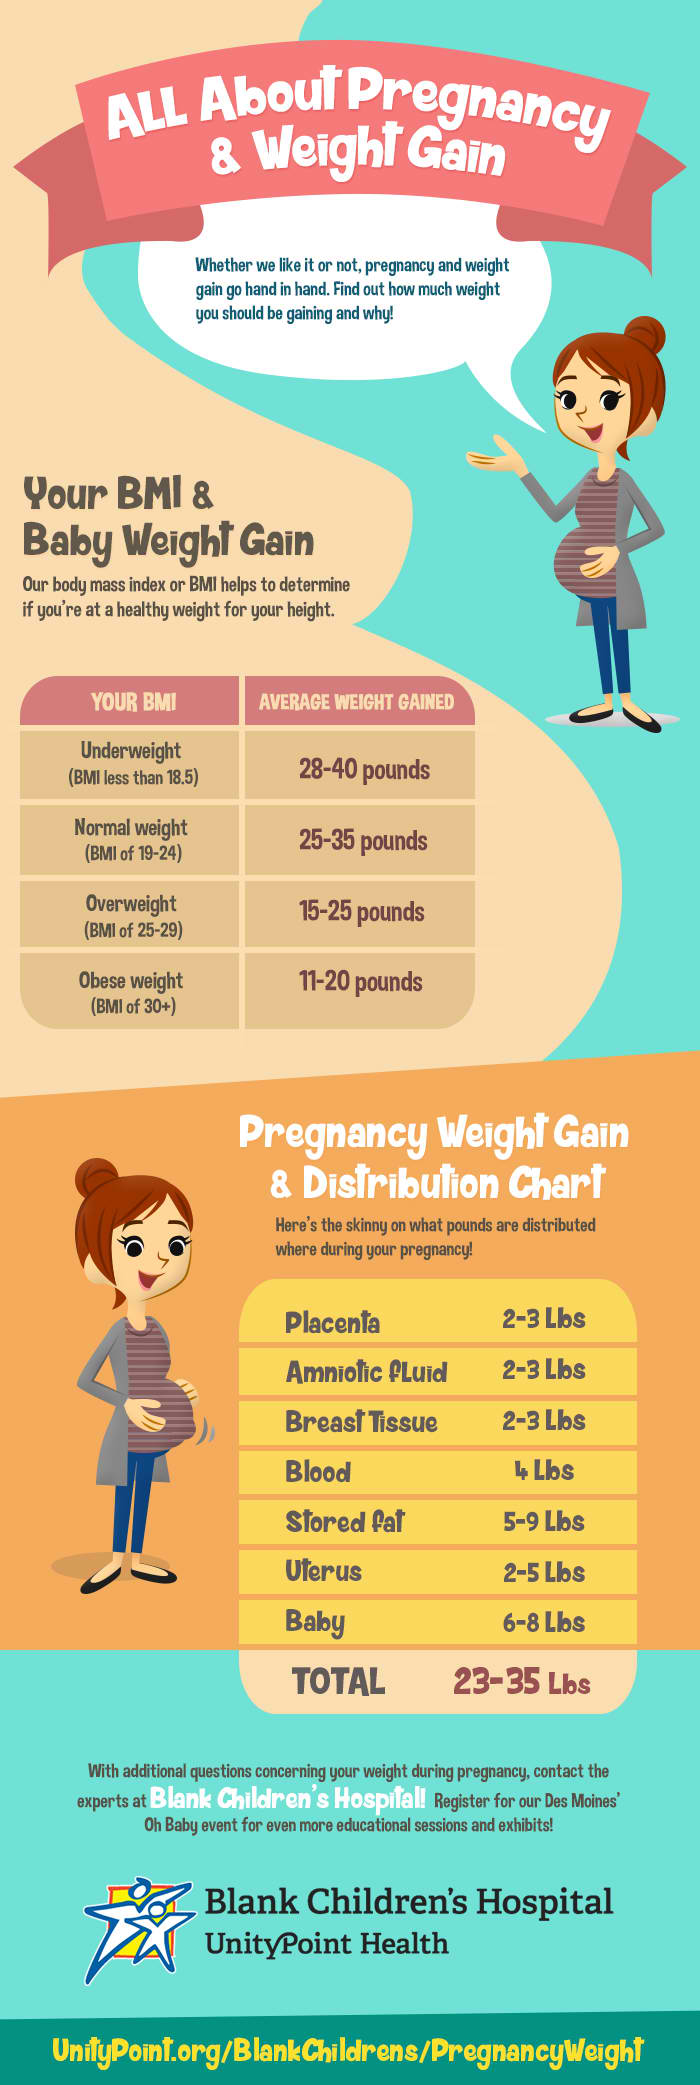 All-About-Pregnancy-and-Weight-Gain-INFO2